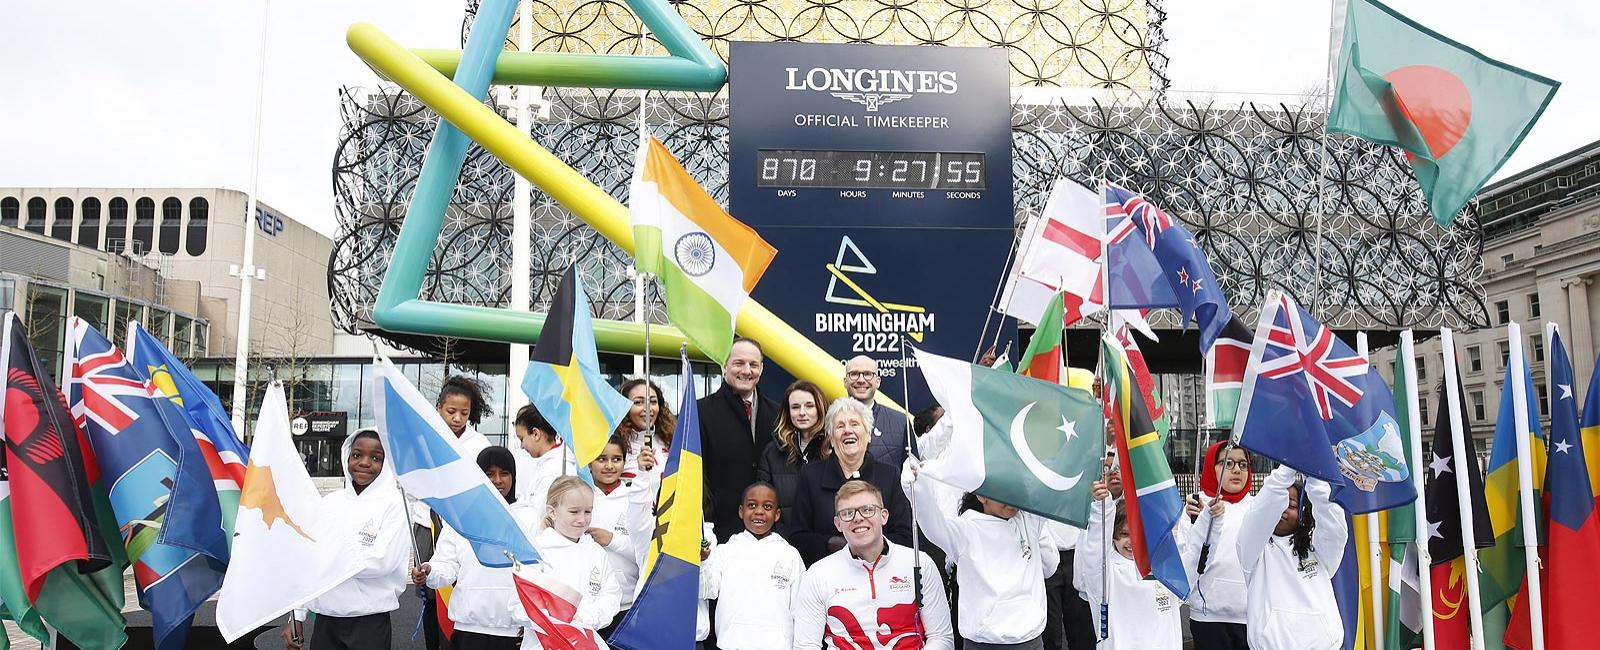 Longines; CGF; historic; multi-Commonwealth Games; Birmingham 2022; Countdown Clock